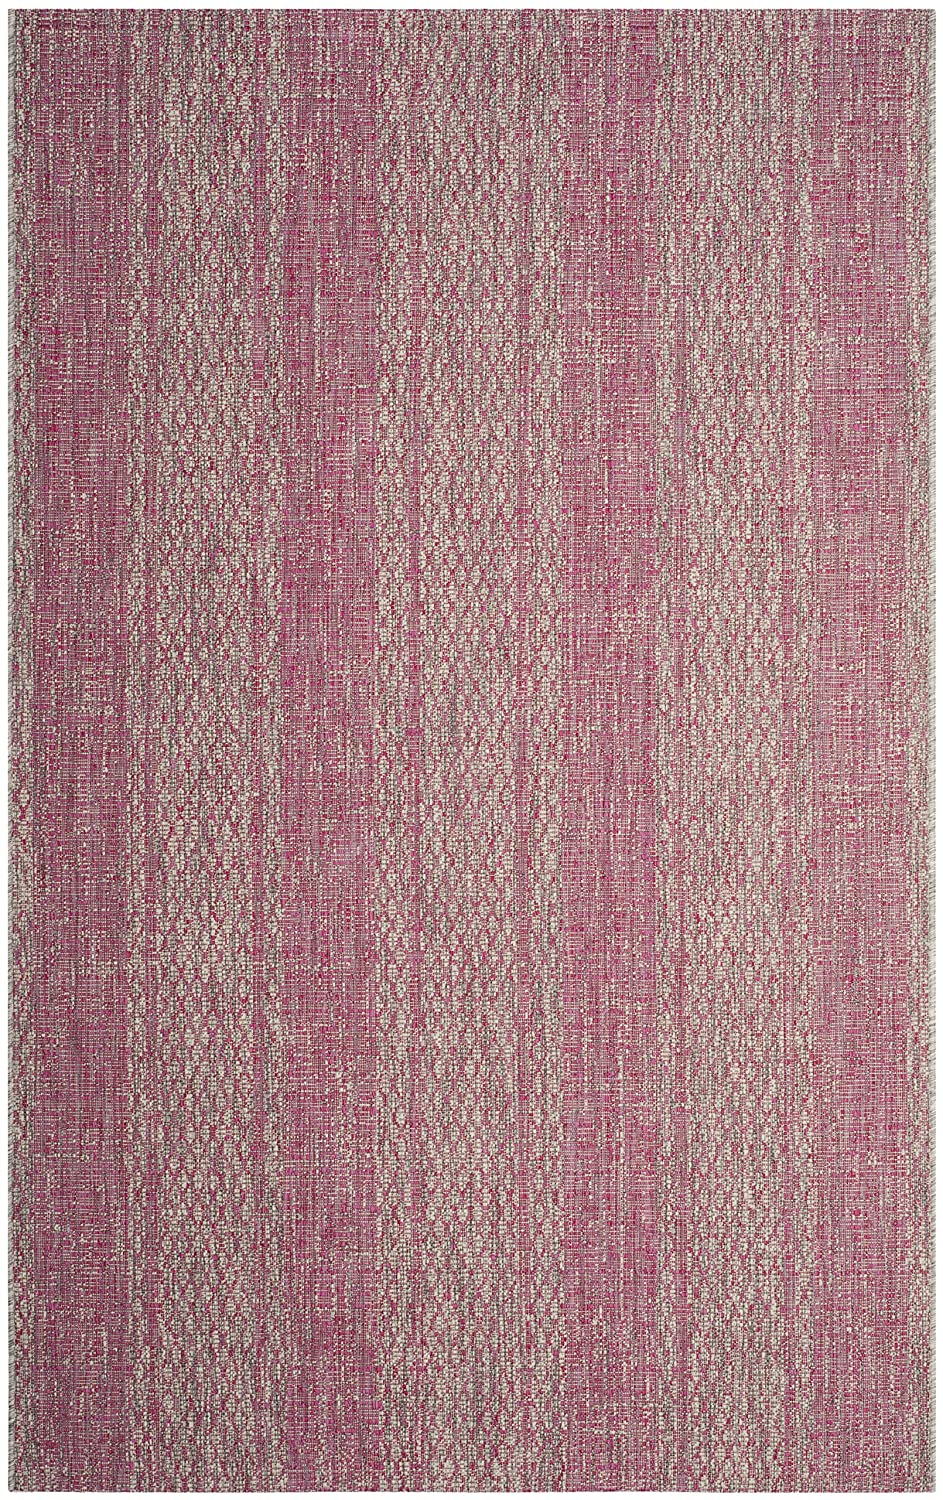 Safavieh Courtyard Collection CY8736-37212 Light Grey and Teal Indoor Outdoor Area Rug CY8736-37212-3 27 x 5